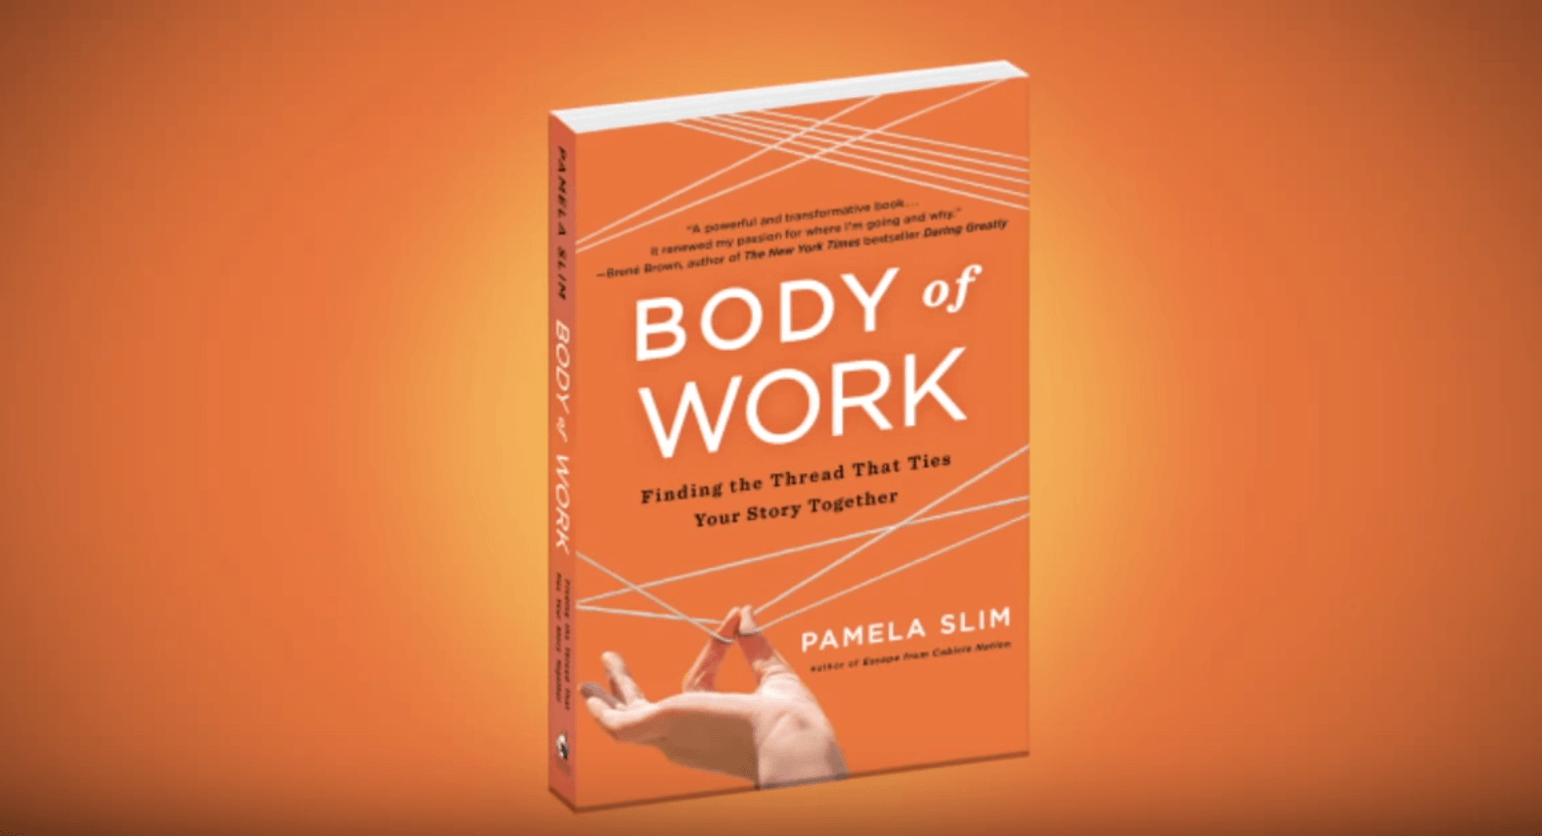 Body of Work Details